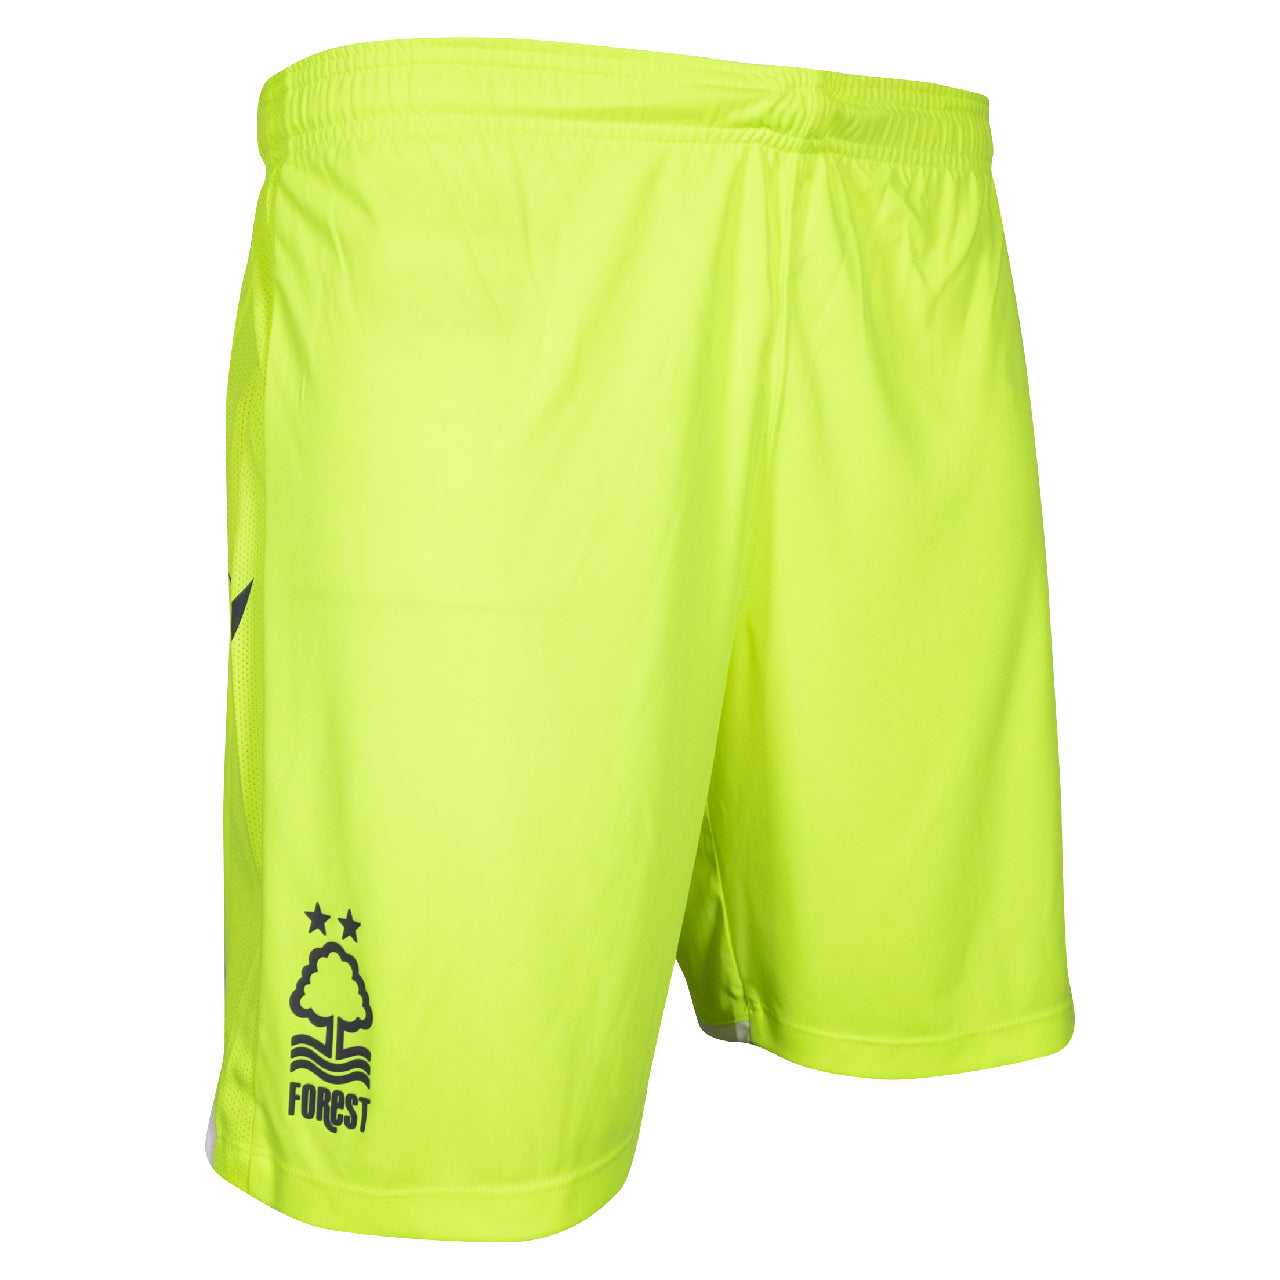 NFFC Junior Yellow Goalkeeper Shorts 2019/20